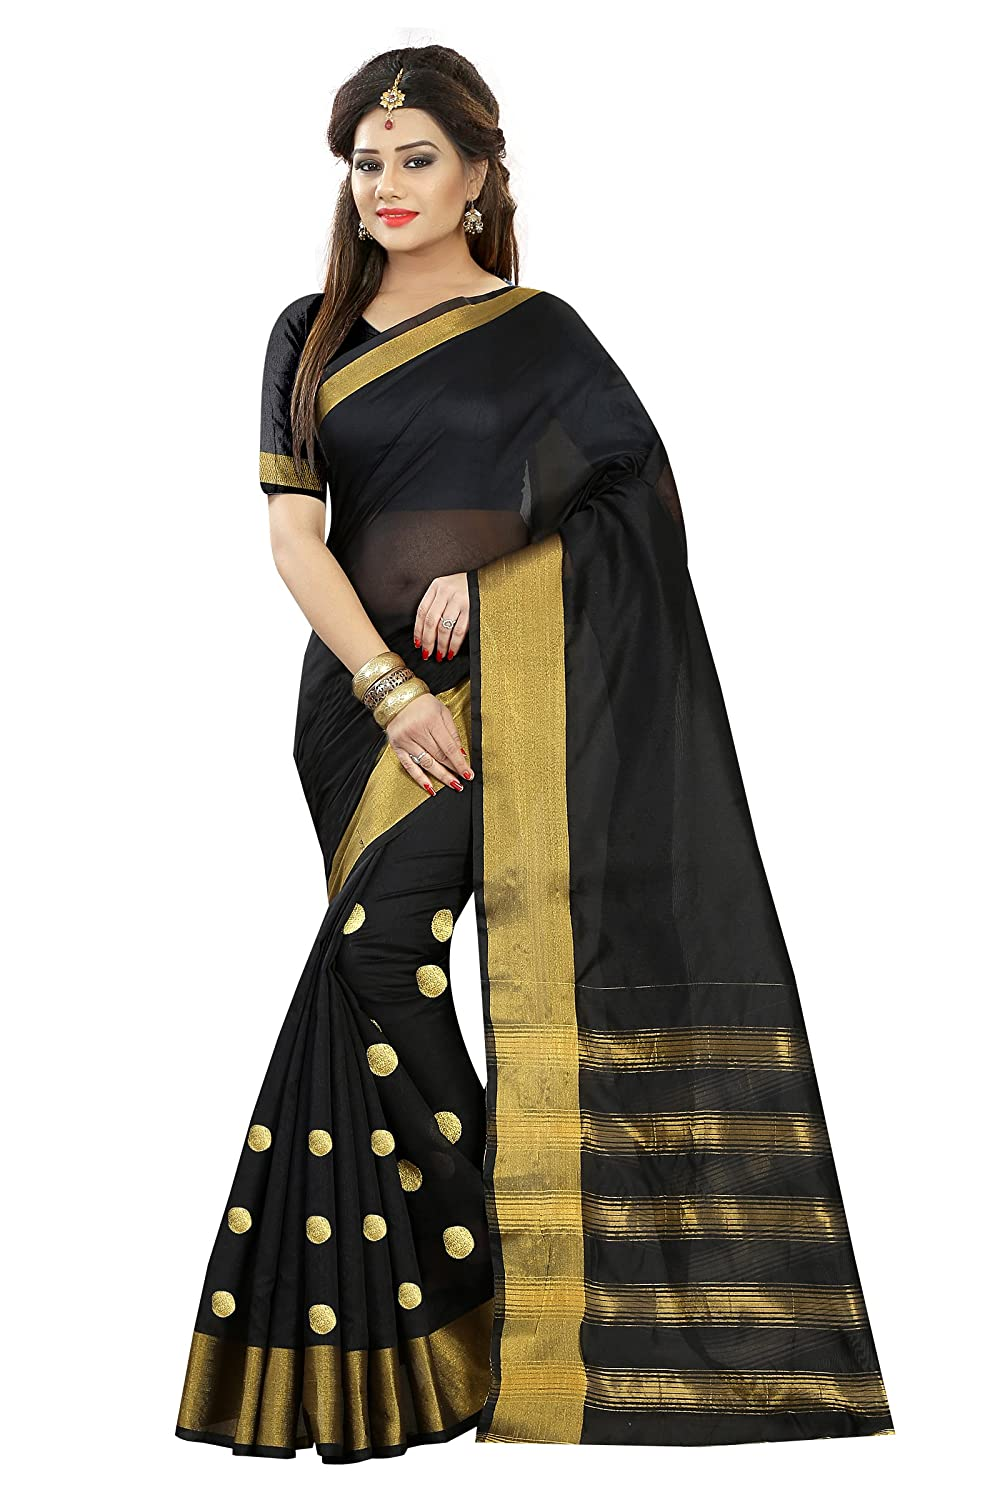 Maahik Sarees Women's Black Cotton Silk Saree With Blouse Piece